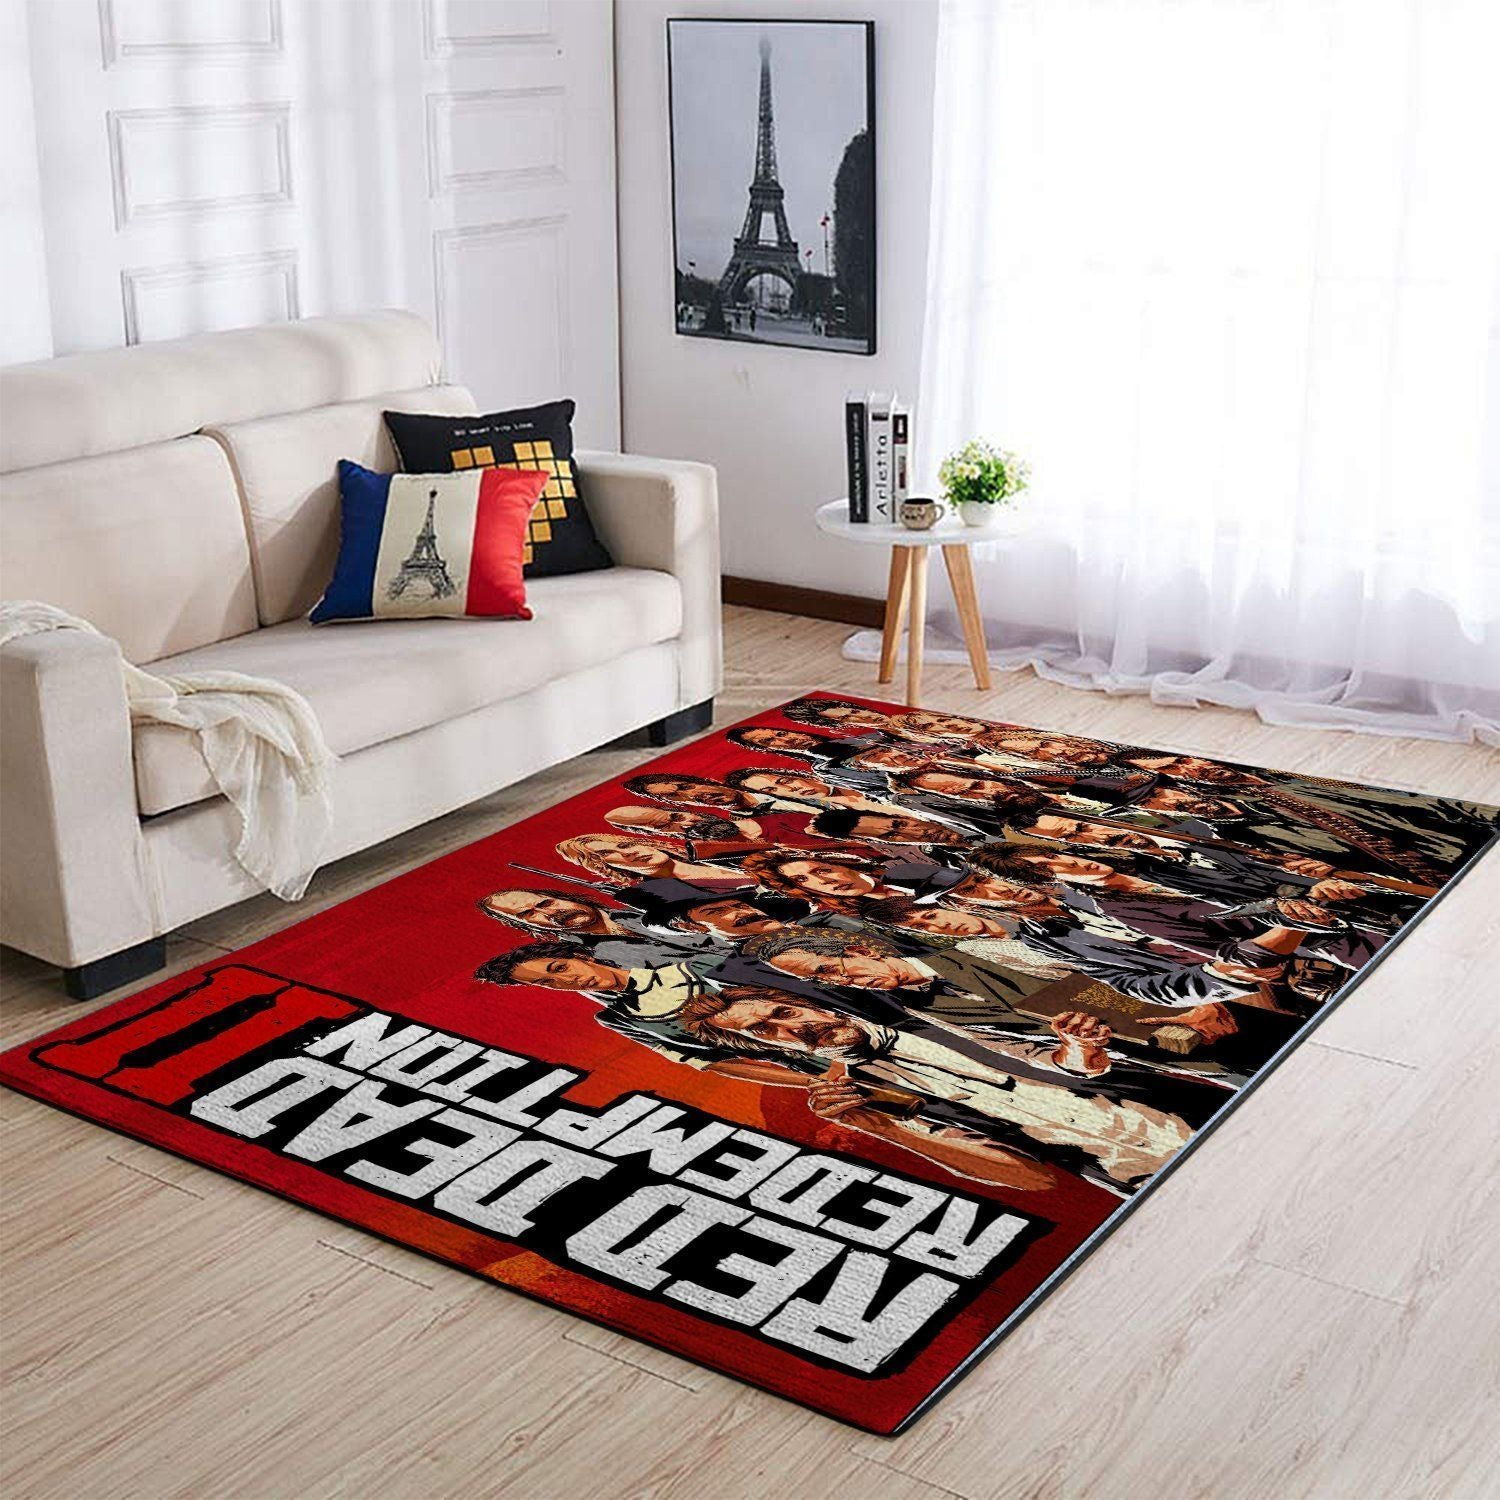 Red Dead Redemption Area Rug / Gaming GFD 19091601